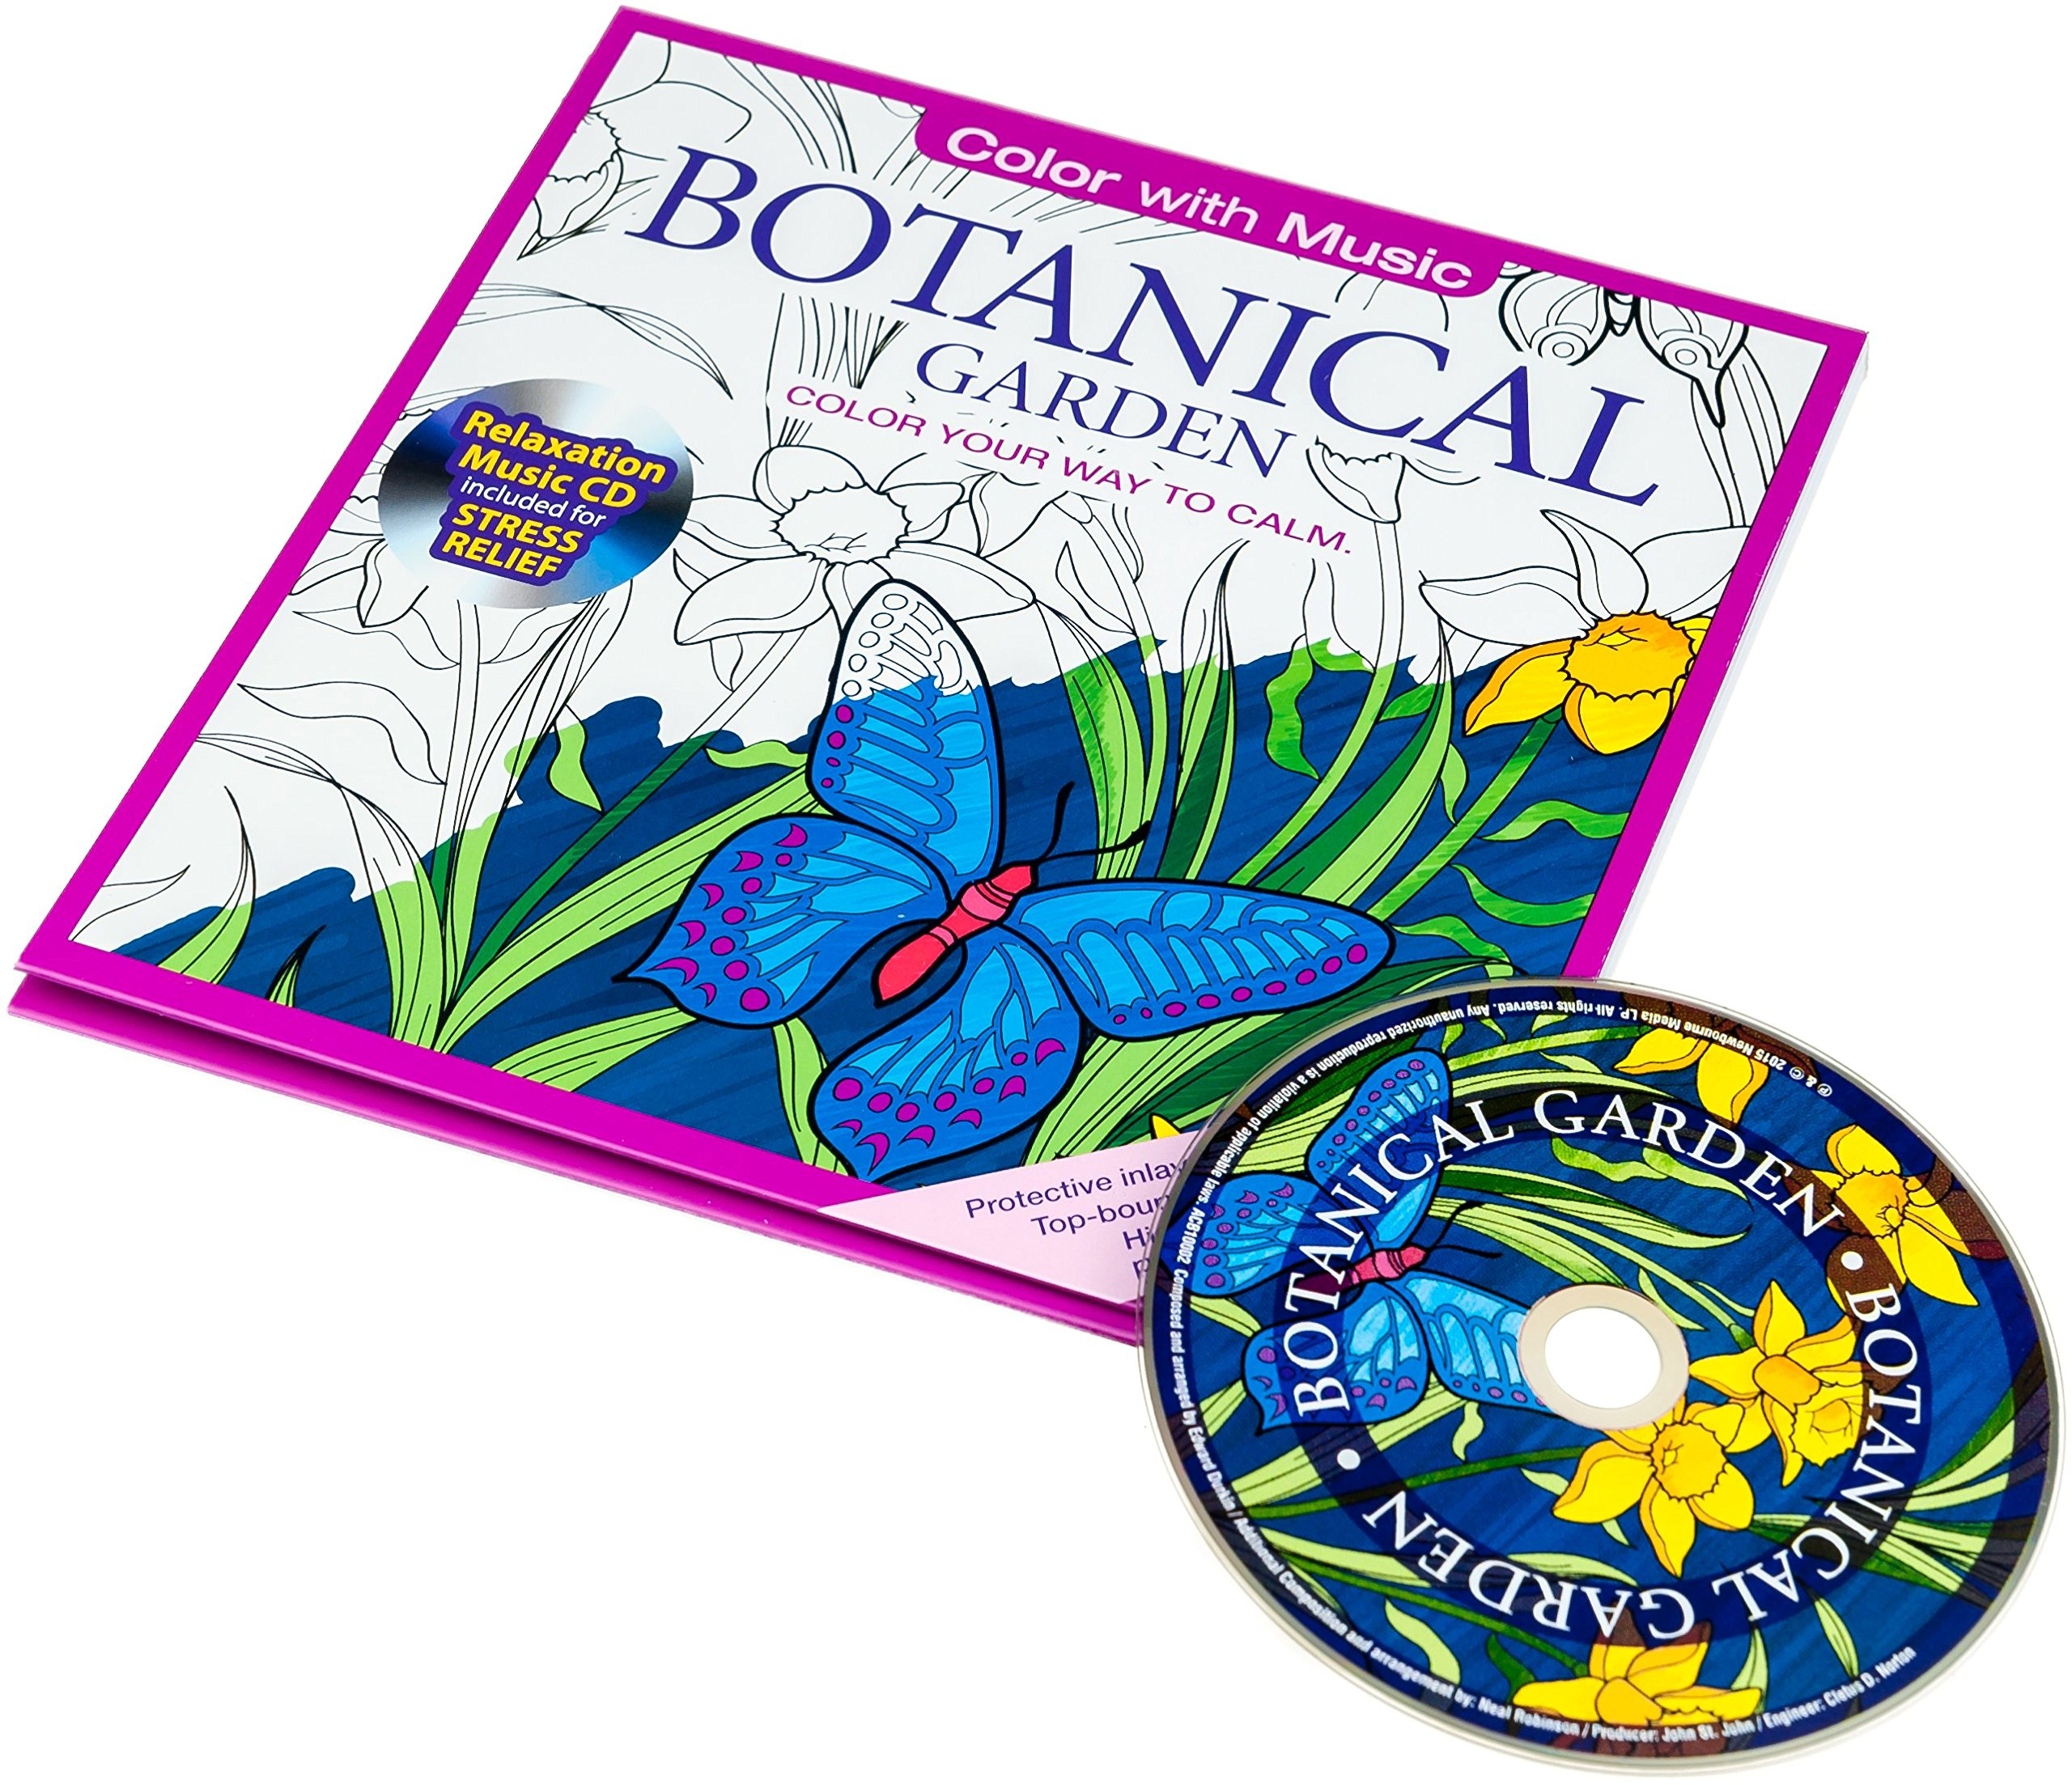 Botanical art coloring book - Amazon Com Botanical Garden Adult Coloring Book With Bonus Relaxation Music Cd Included Color With Music 9781988137018 Newbourne Media Books